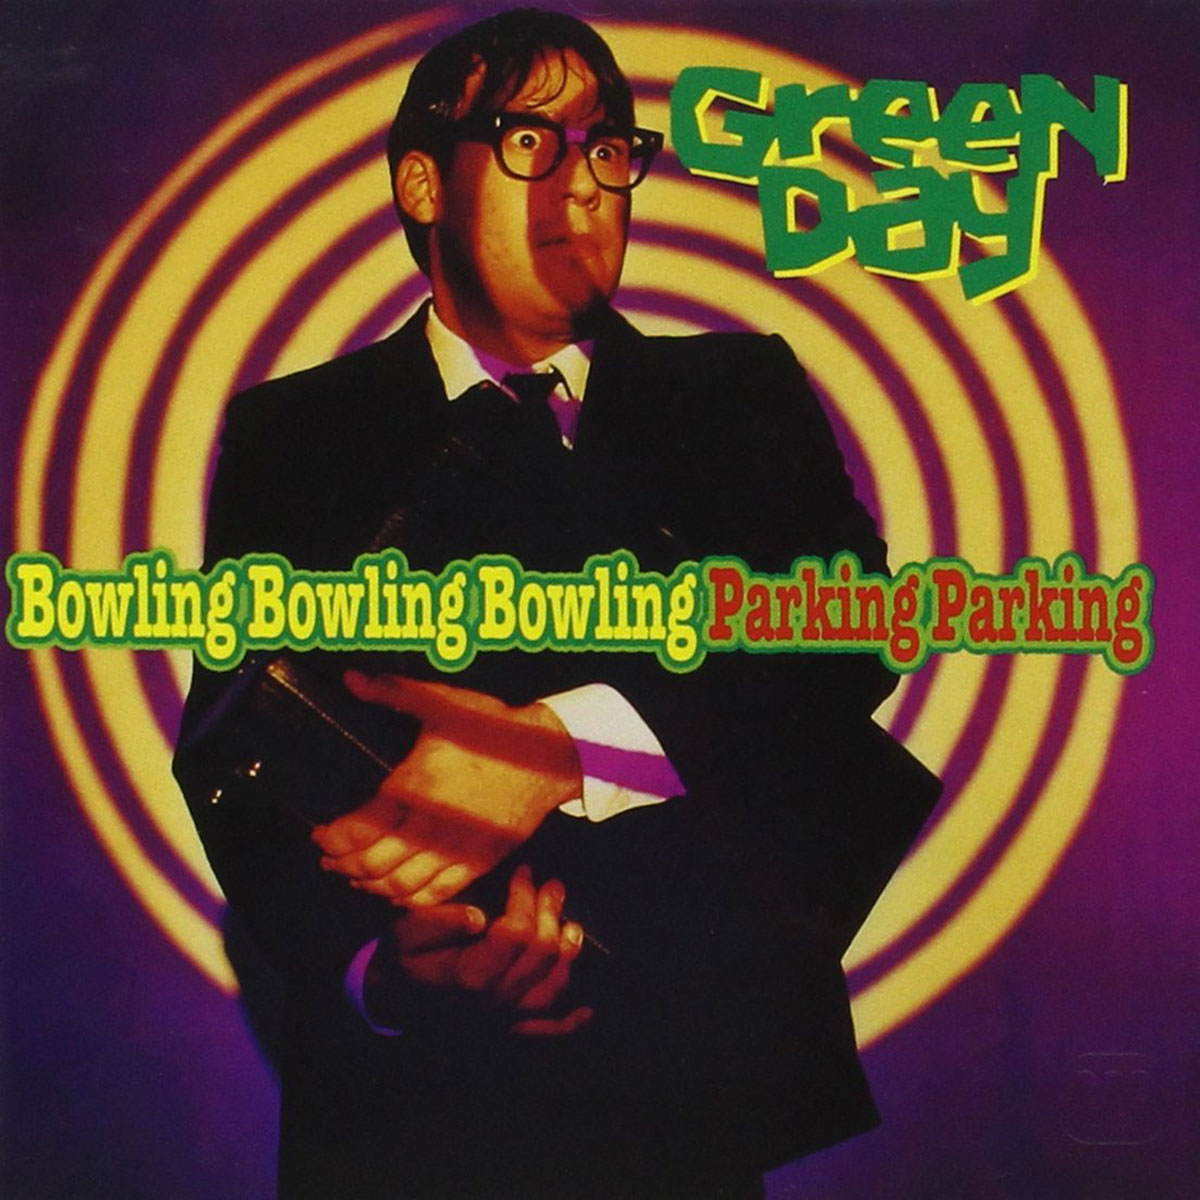 Green Day - Bowling Bowling Bowling Parking Parking